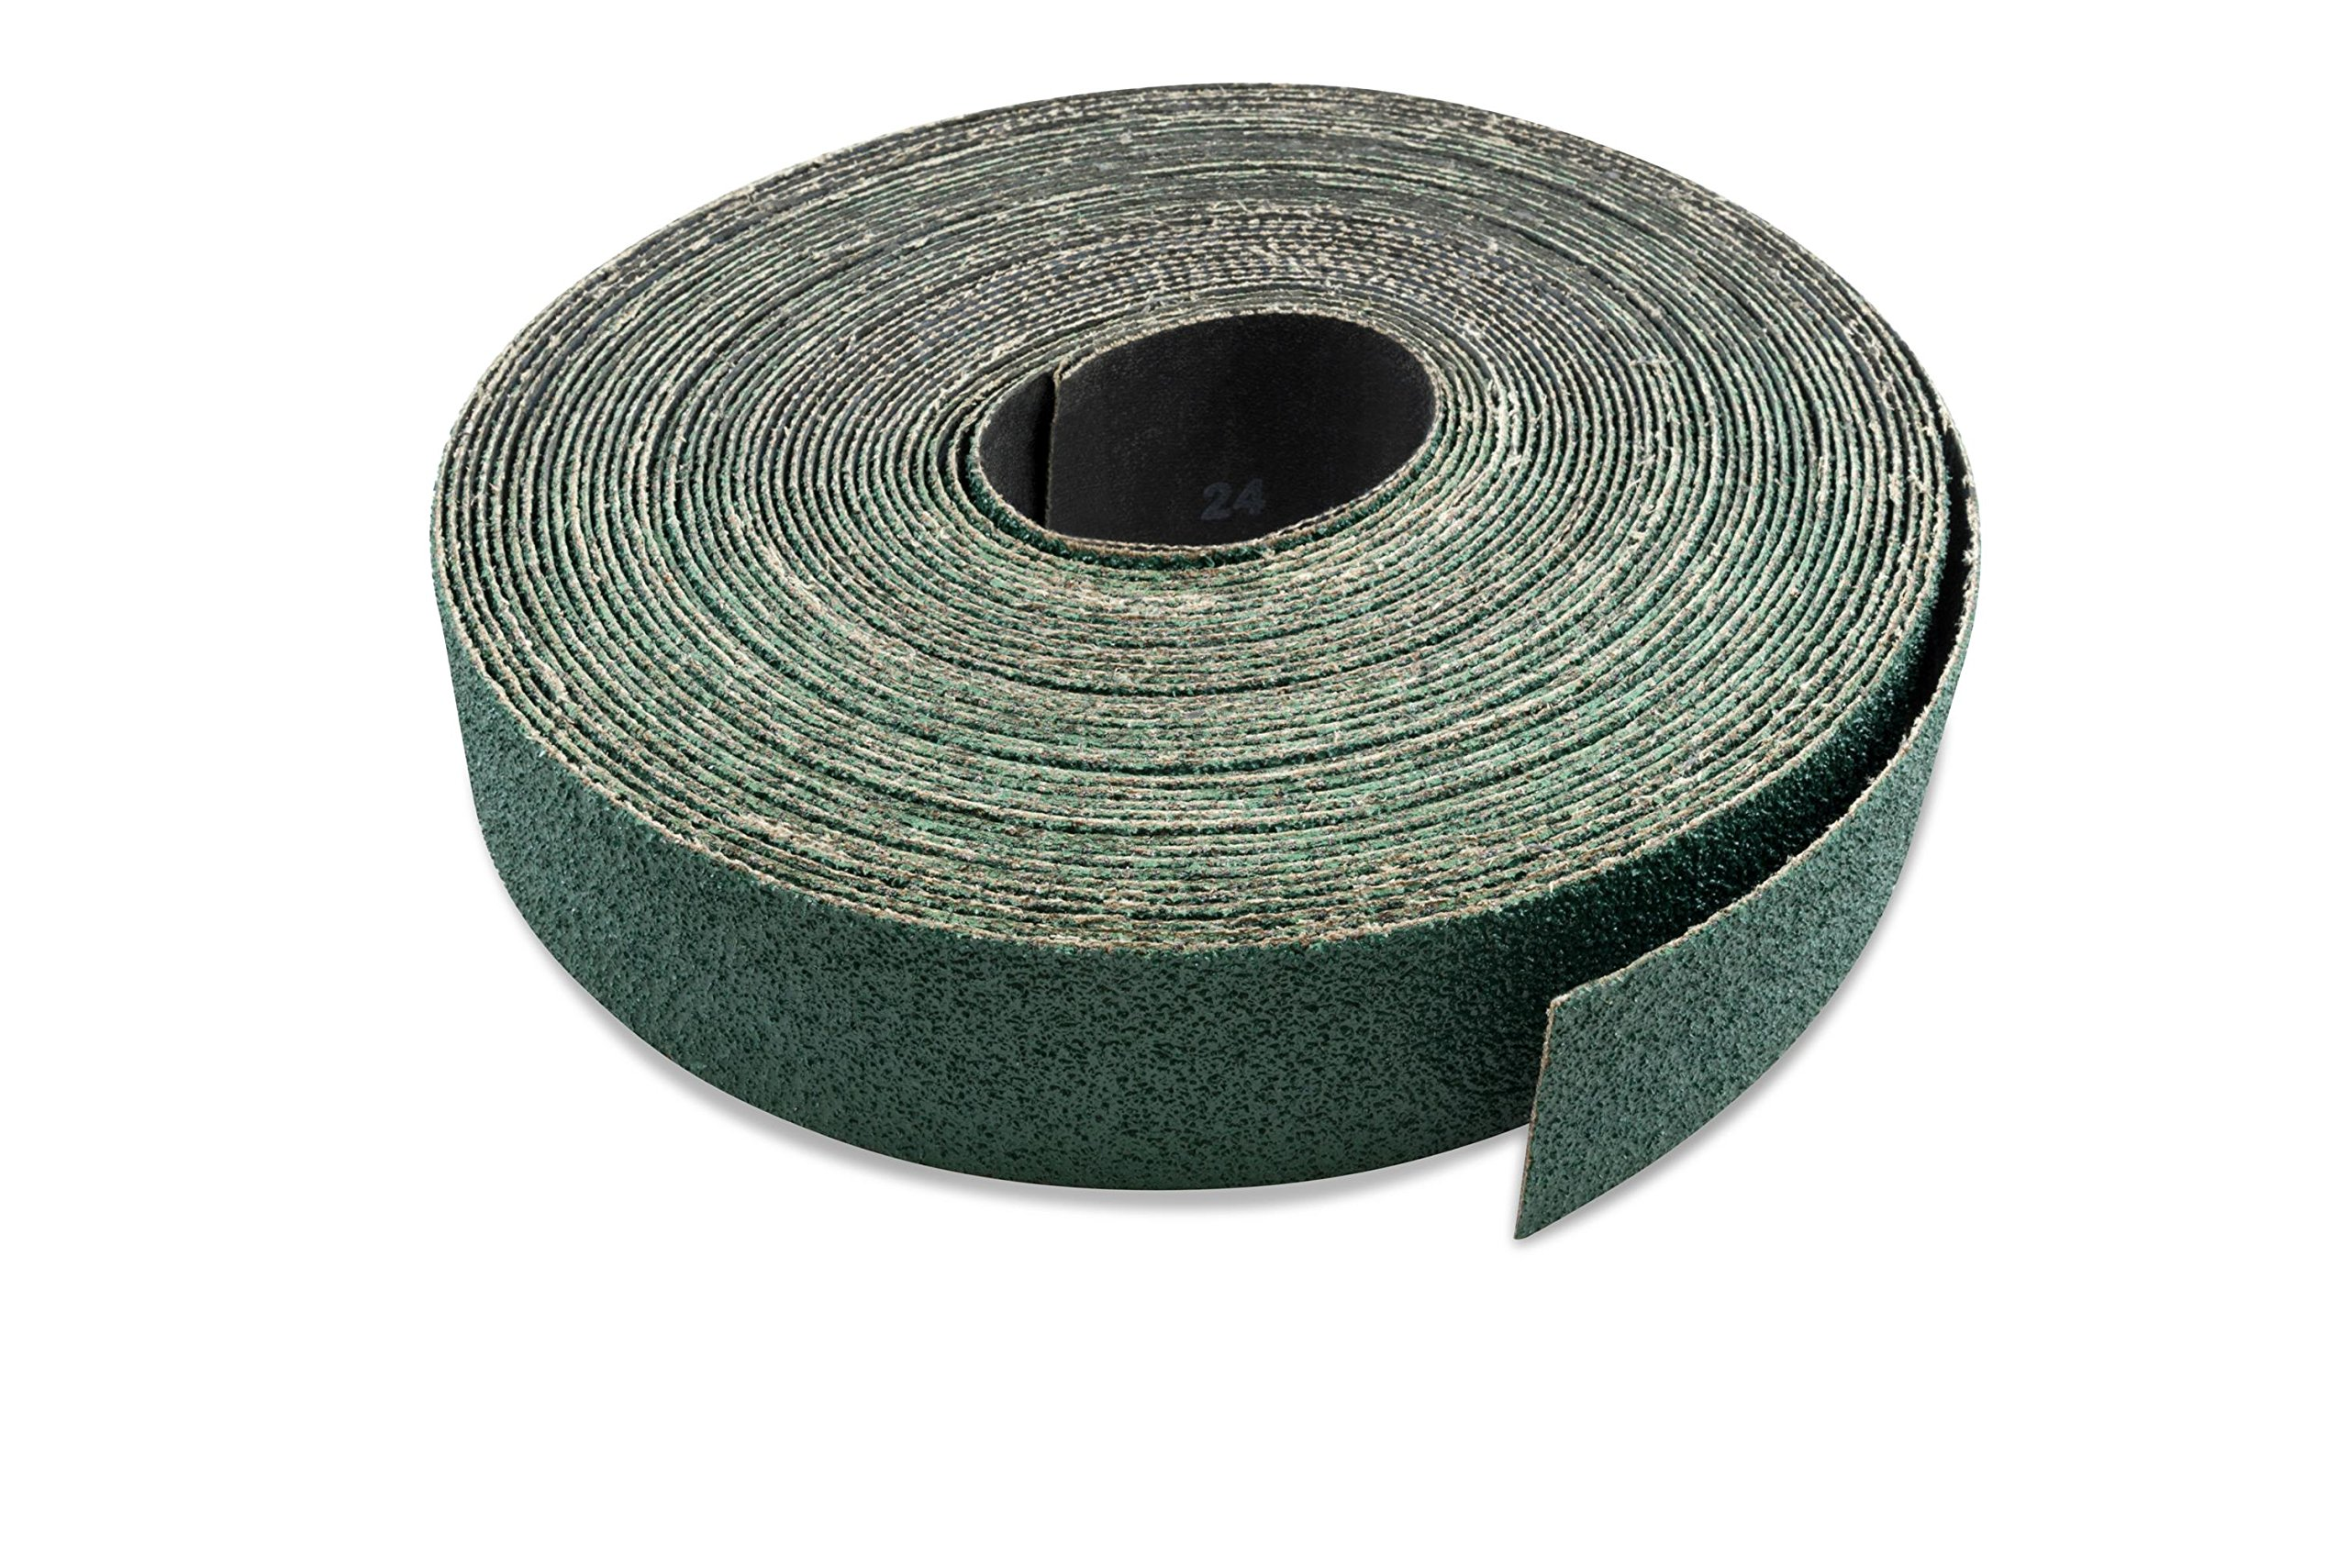 3 inch X 70 FT 80 Grit Zirconia Woodworking Drum Sander Roll, Cut Strips to Length